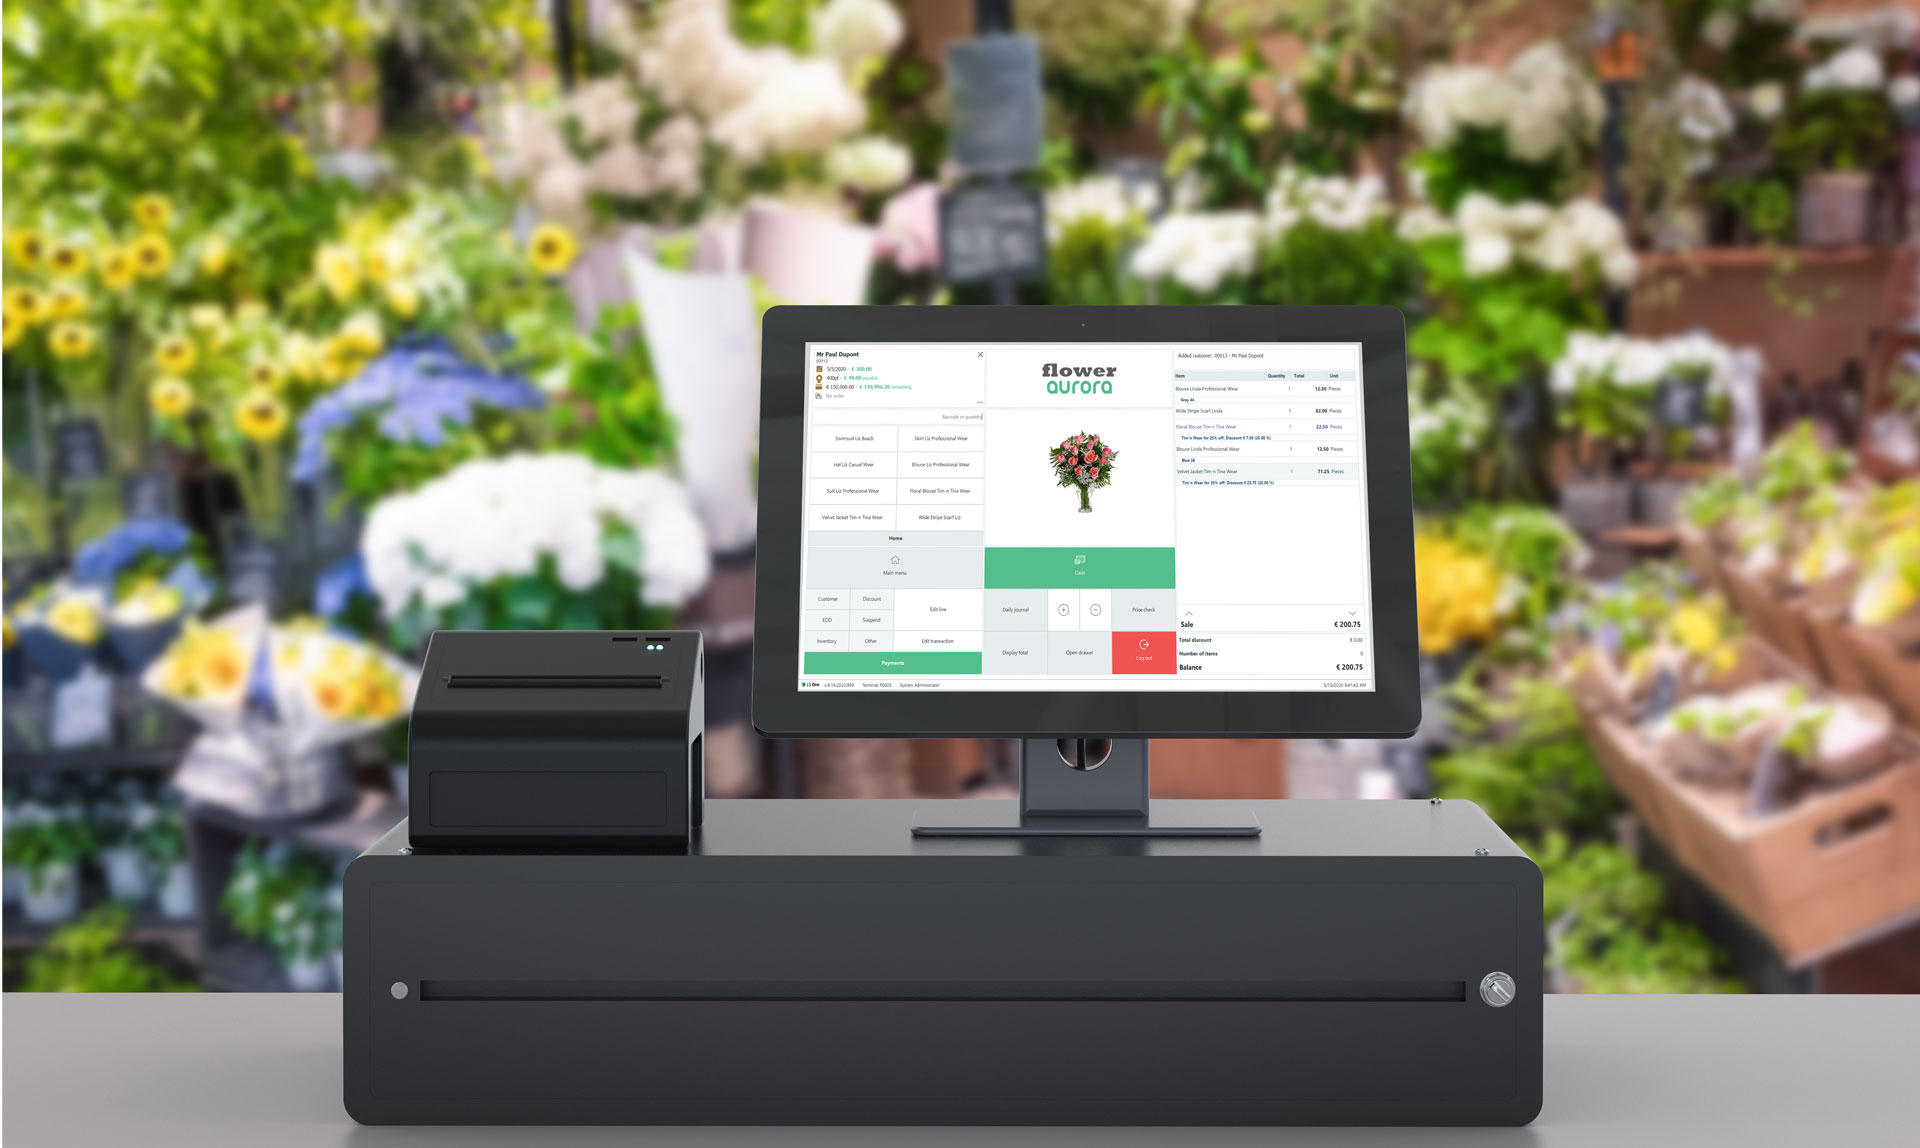 9 reasons why LS One is the ideal POS to replace Microsoft RMS, which is now end of life